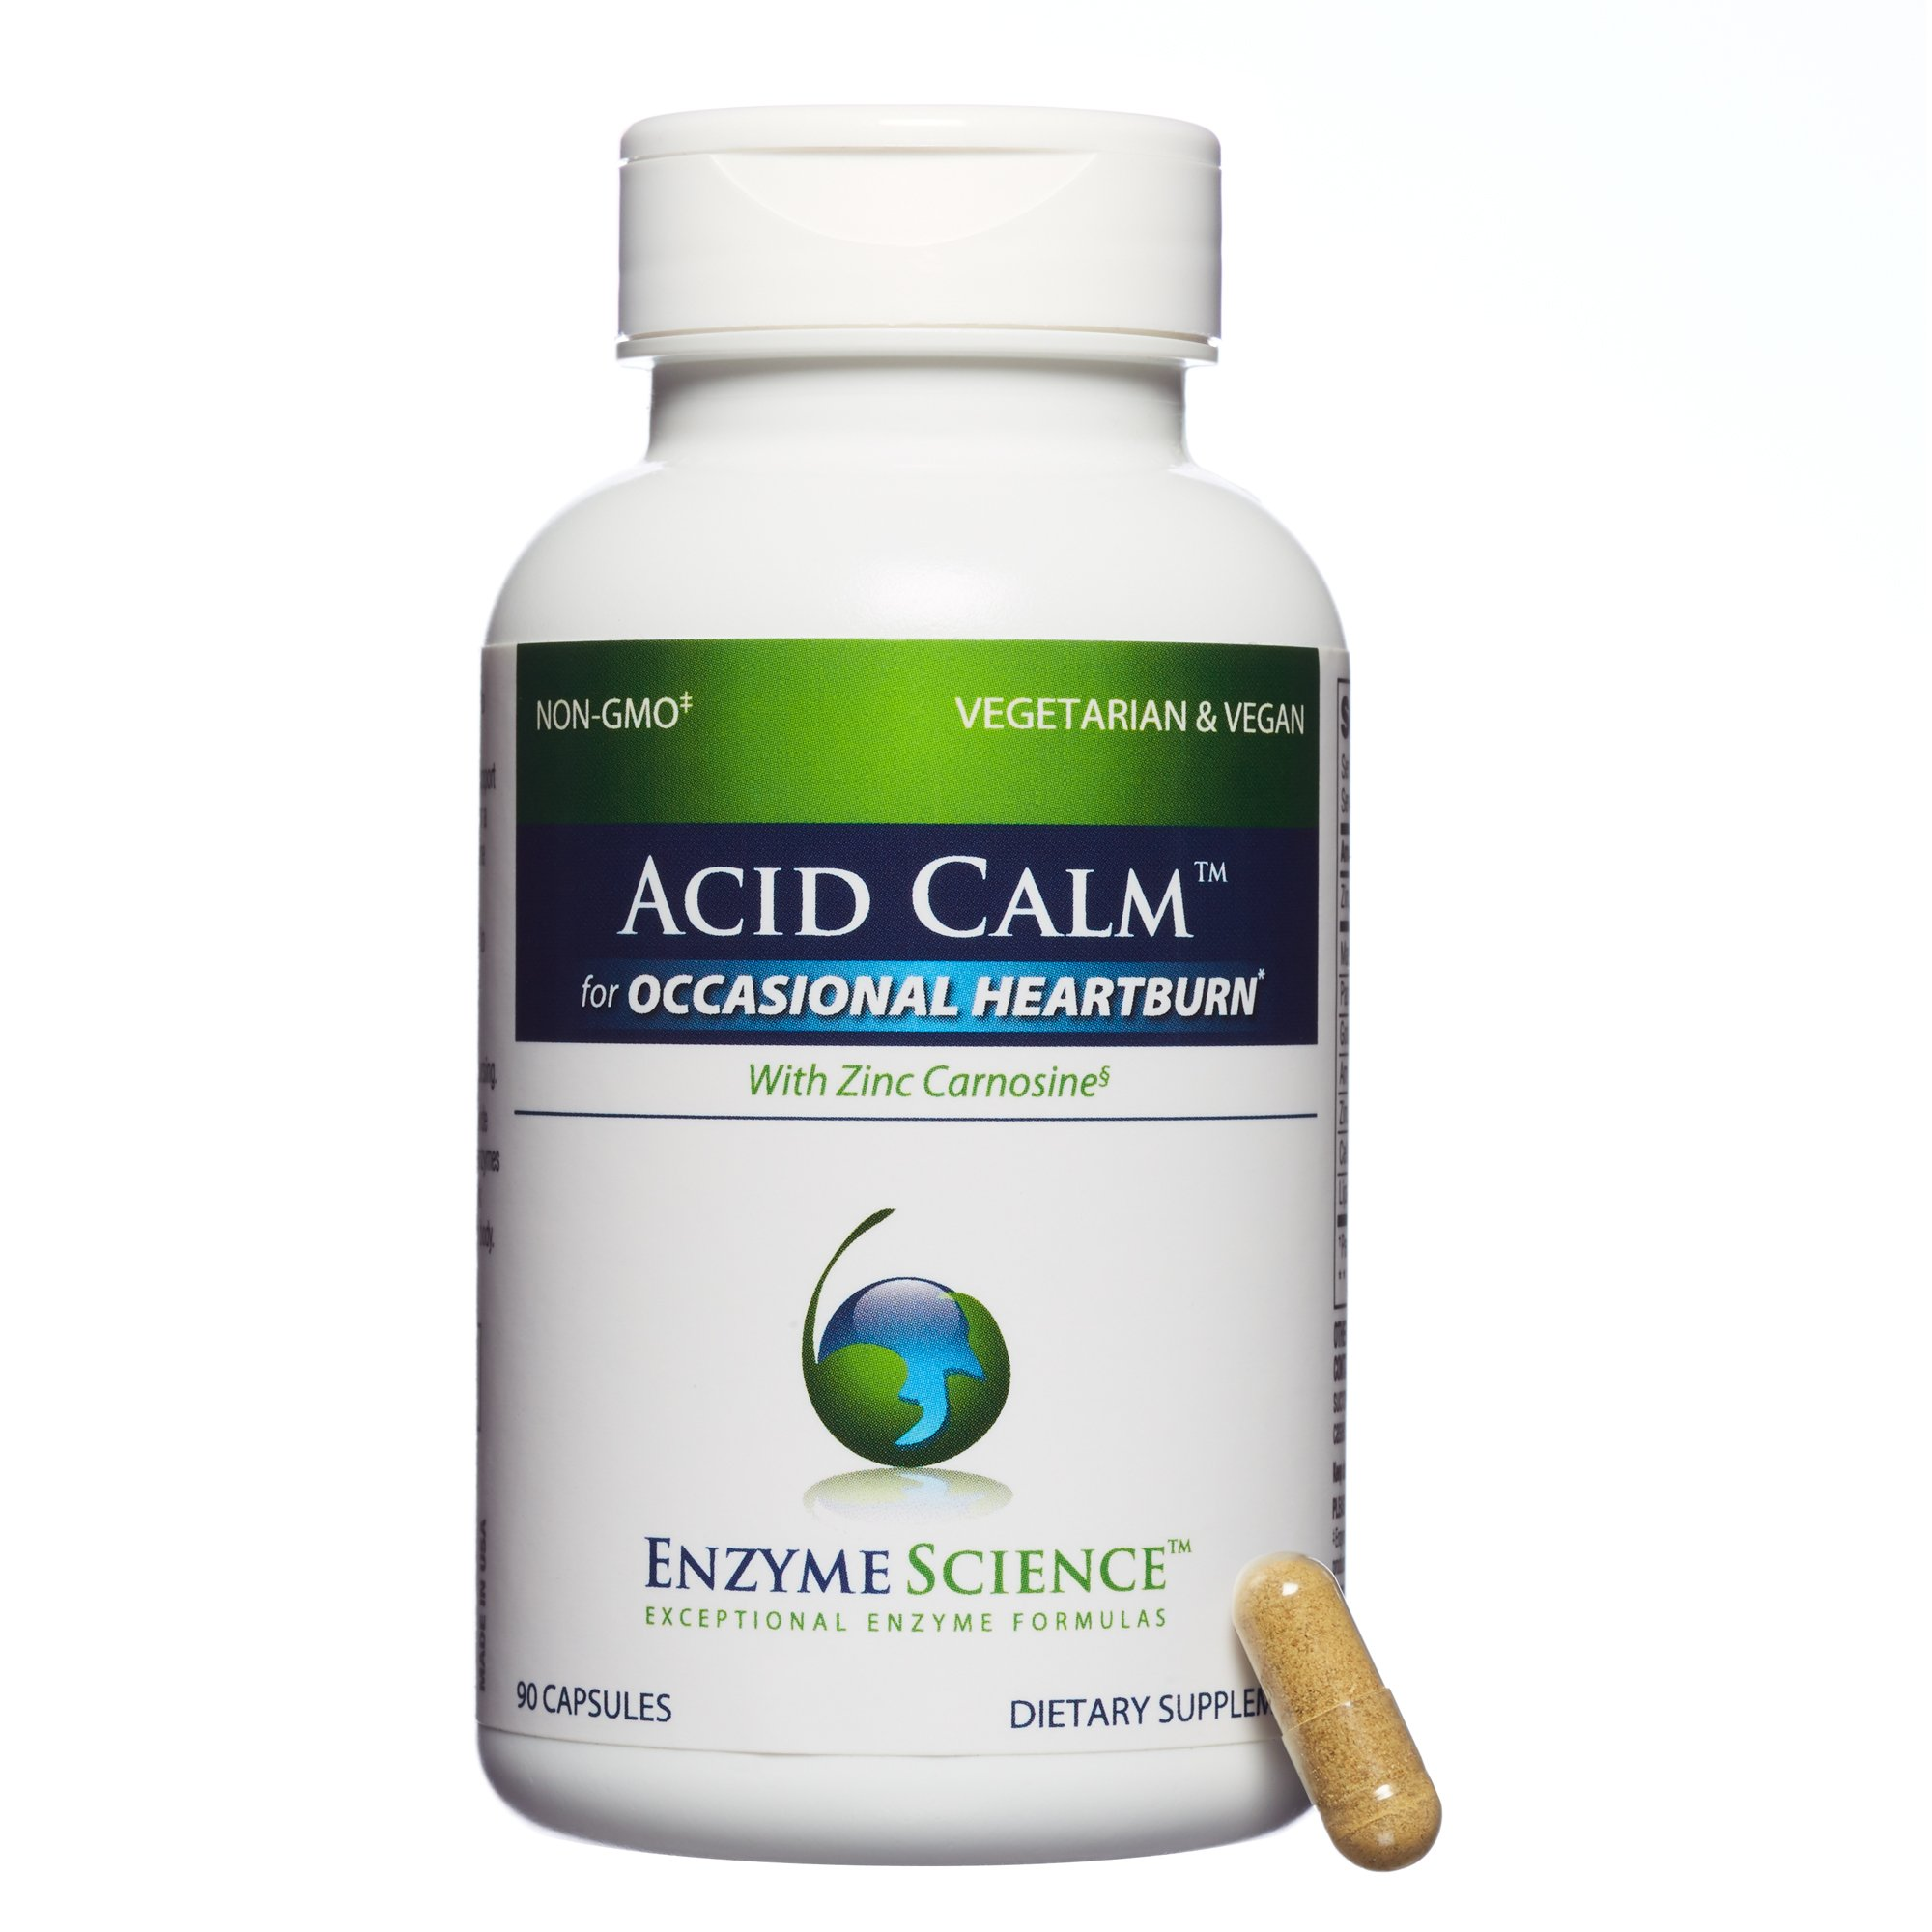 Enzyme Science - Acid Calm, Occasional Heartburn & Indigestion, 90 Vegetarian Capsules by Enzyme Science